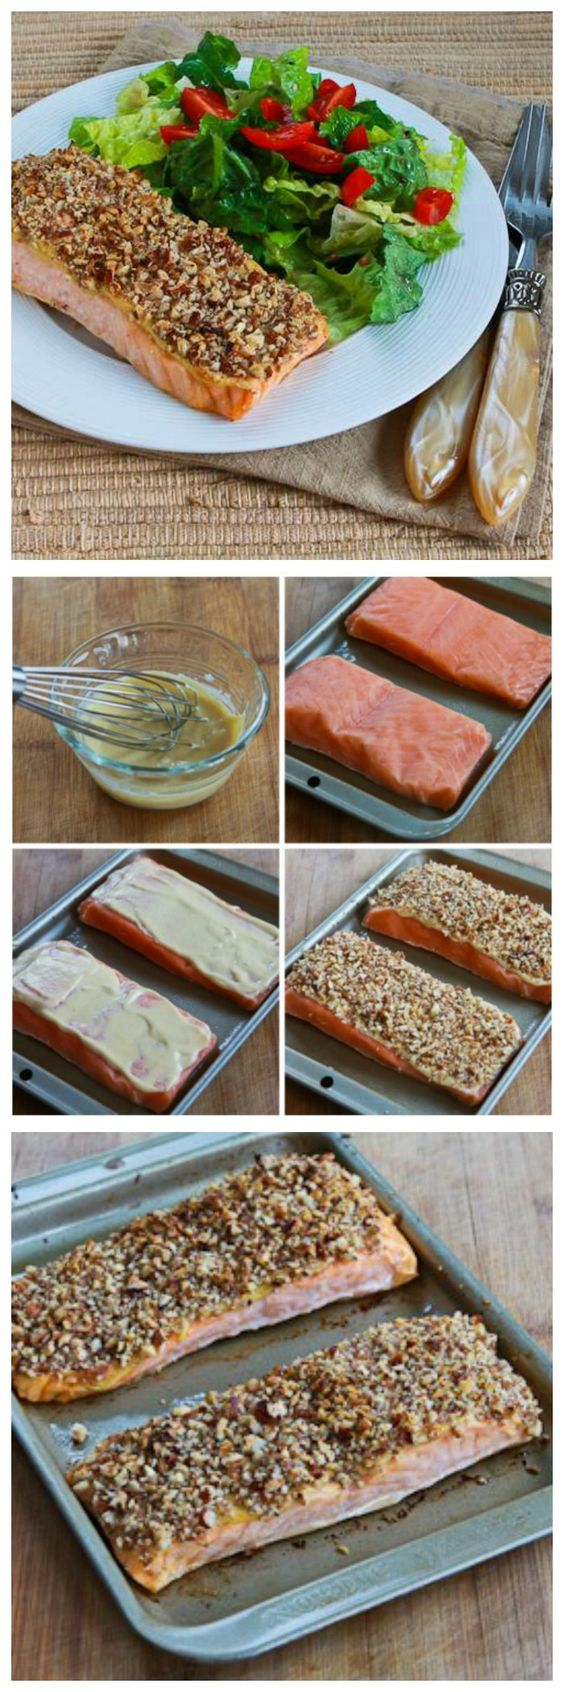 Pecan-Crusted Dijon Salmon is perfect for a special meal like Valentine's Day and this recipe is as easy as it is delicious.  [from KalynsKitchen.com]